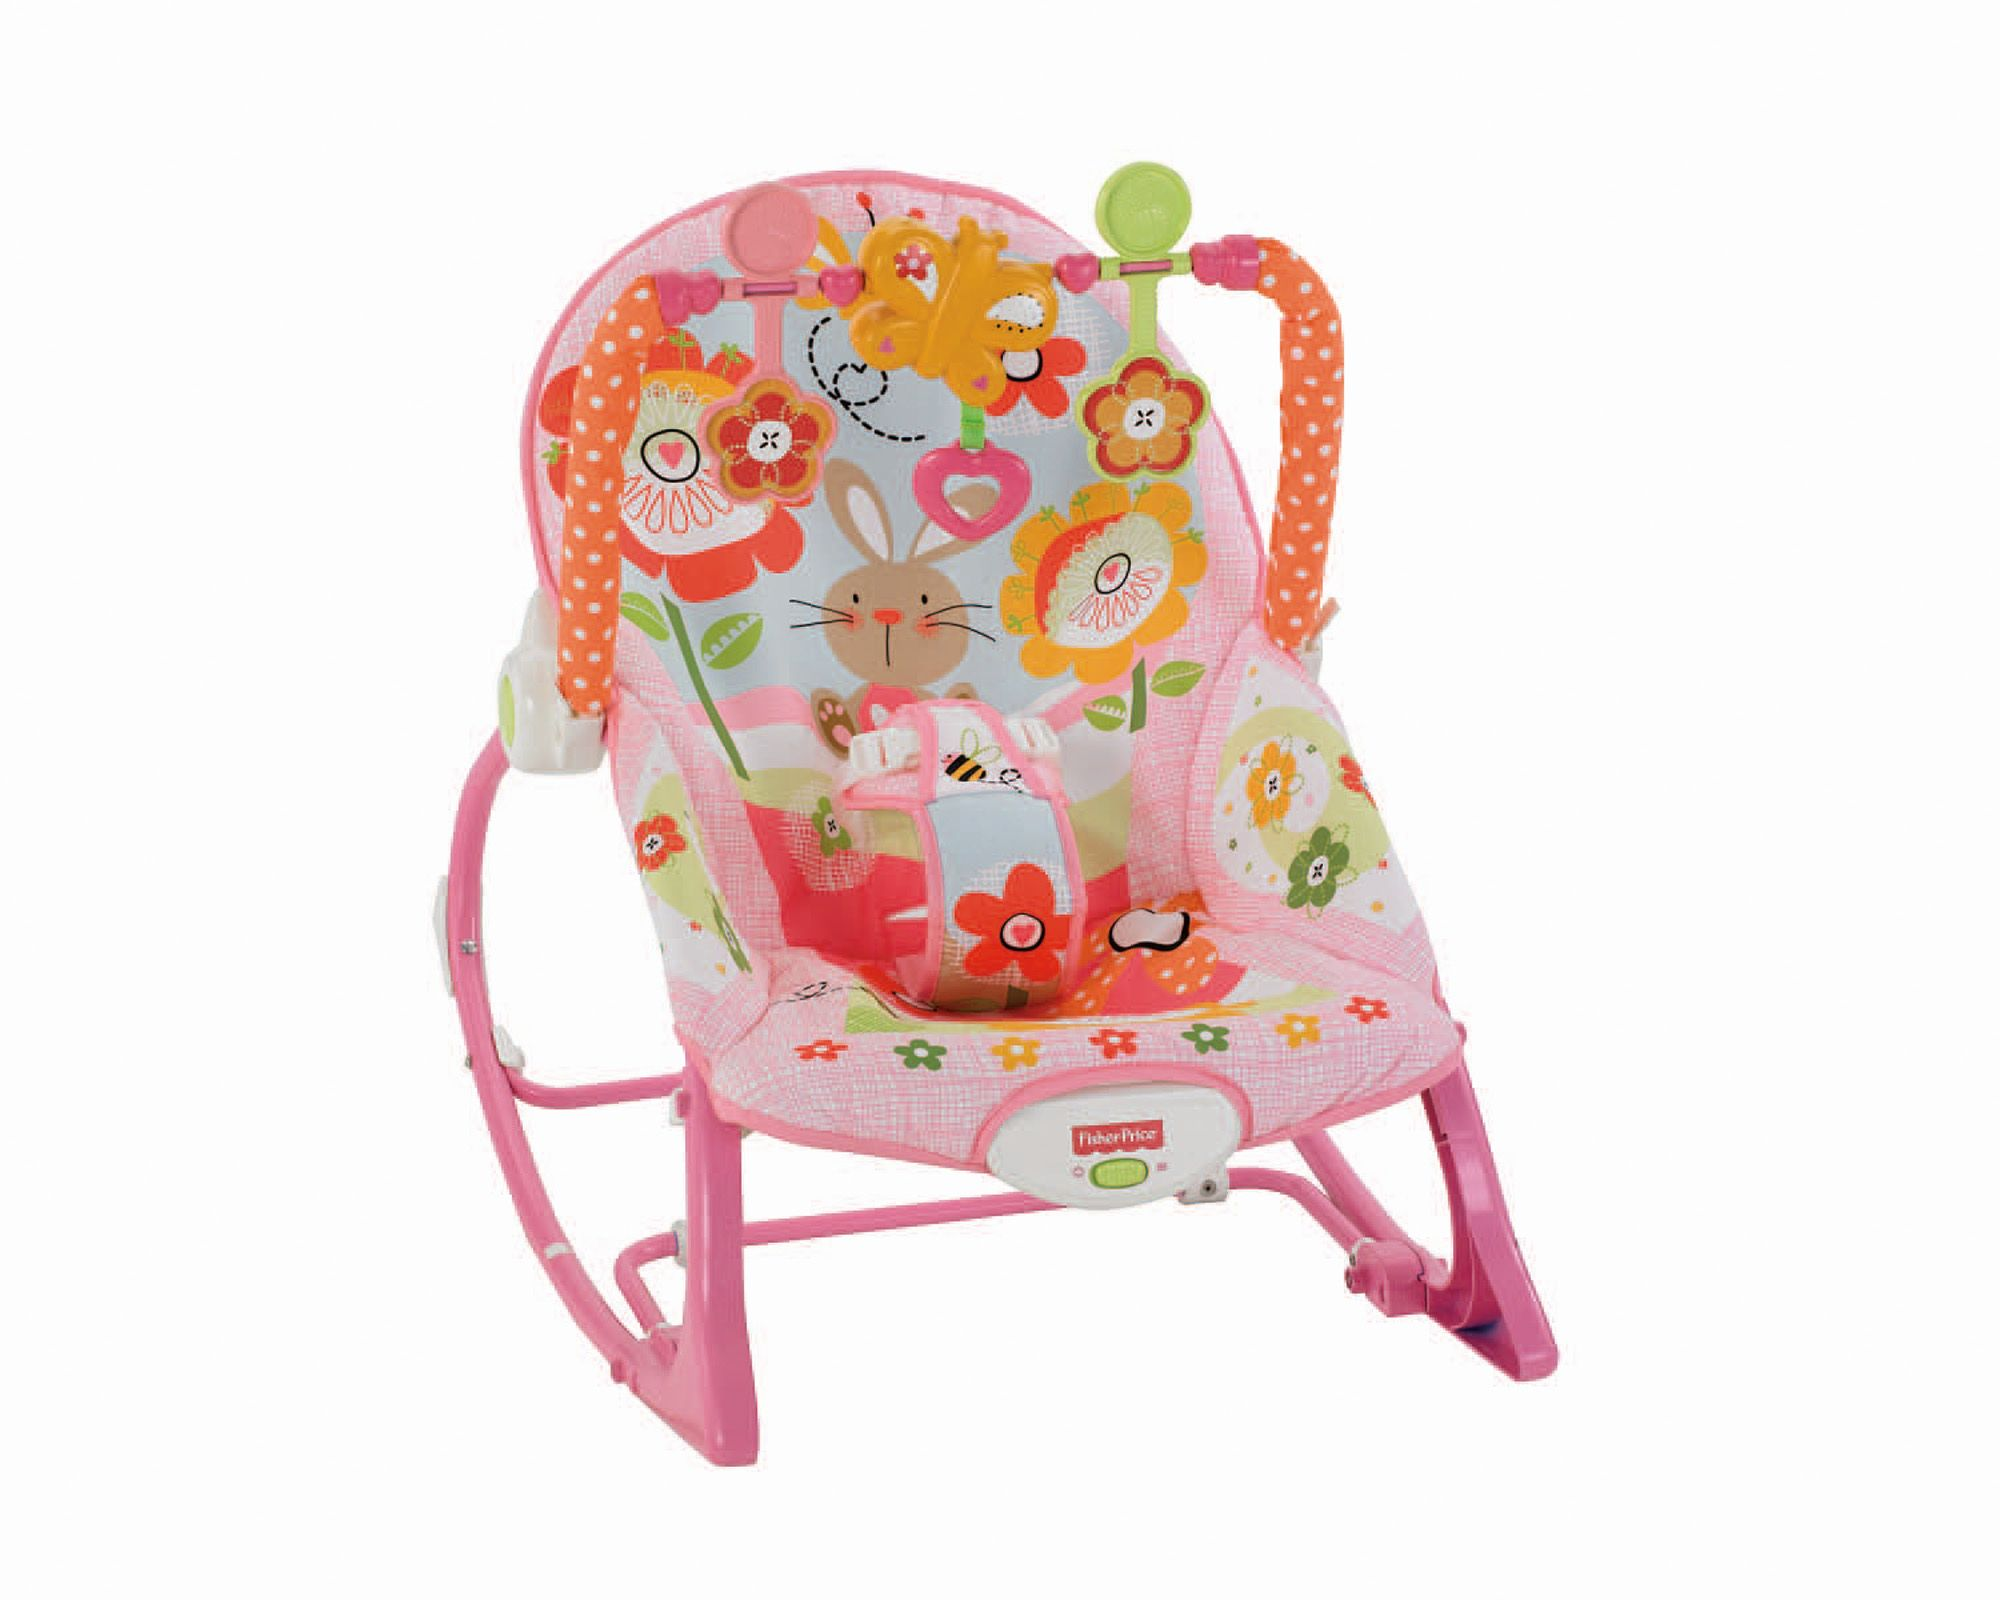 Remarkable Pin By Babycity Uk On Bouncers Rockers Swings Baby Ncnpc Chair Design For Home Ncnpcorg